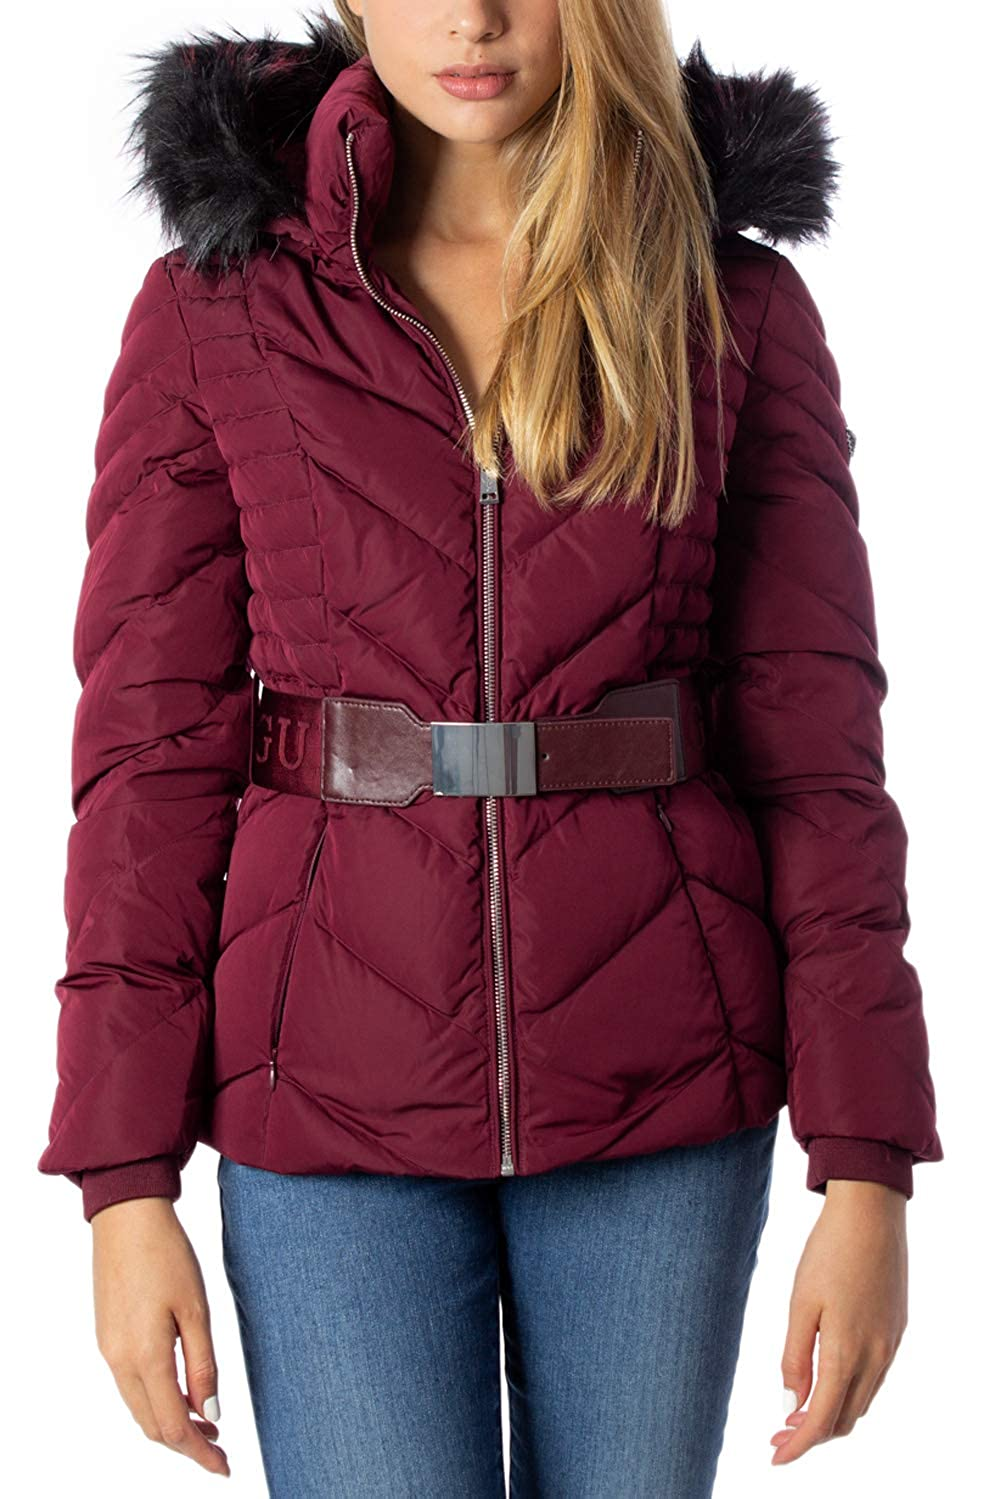 Guess Piumino Lungo Donna Petra Down Jacket w94l81w94g0